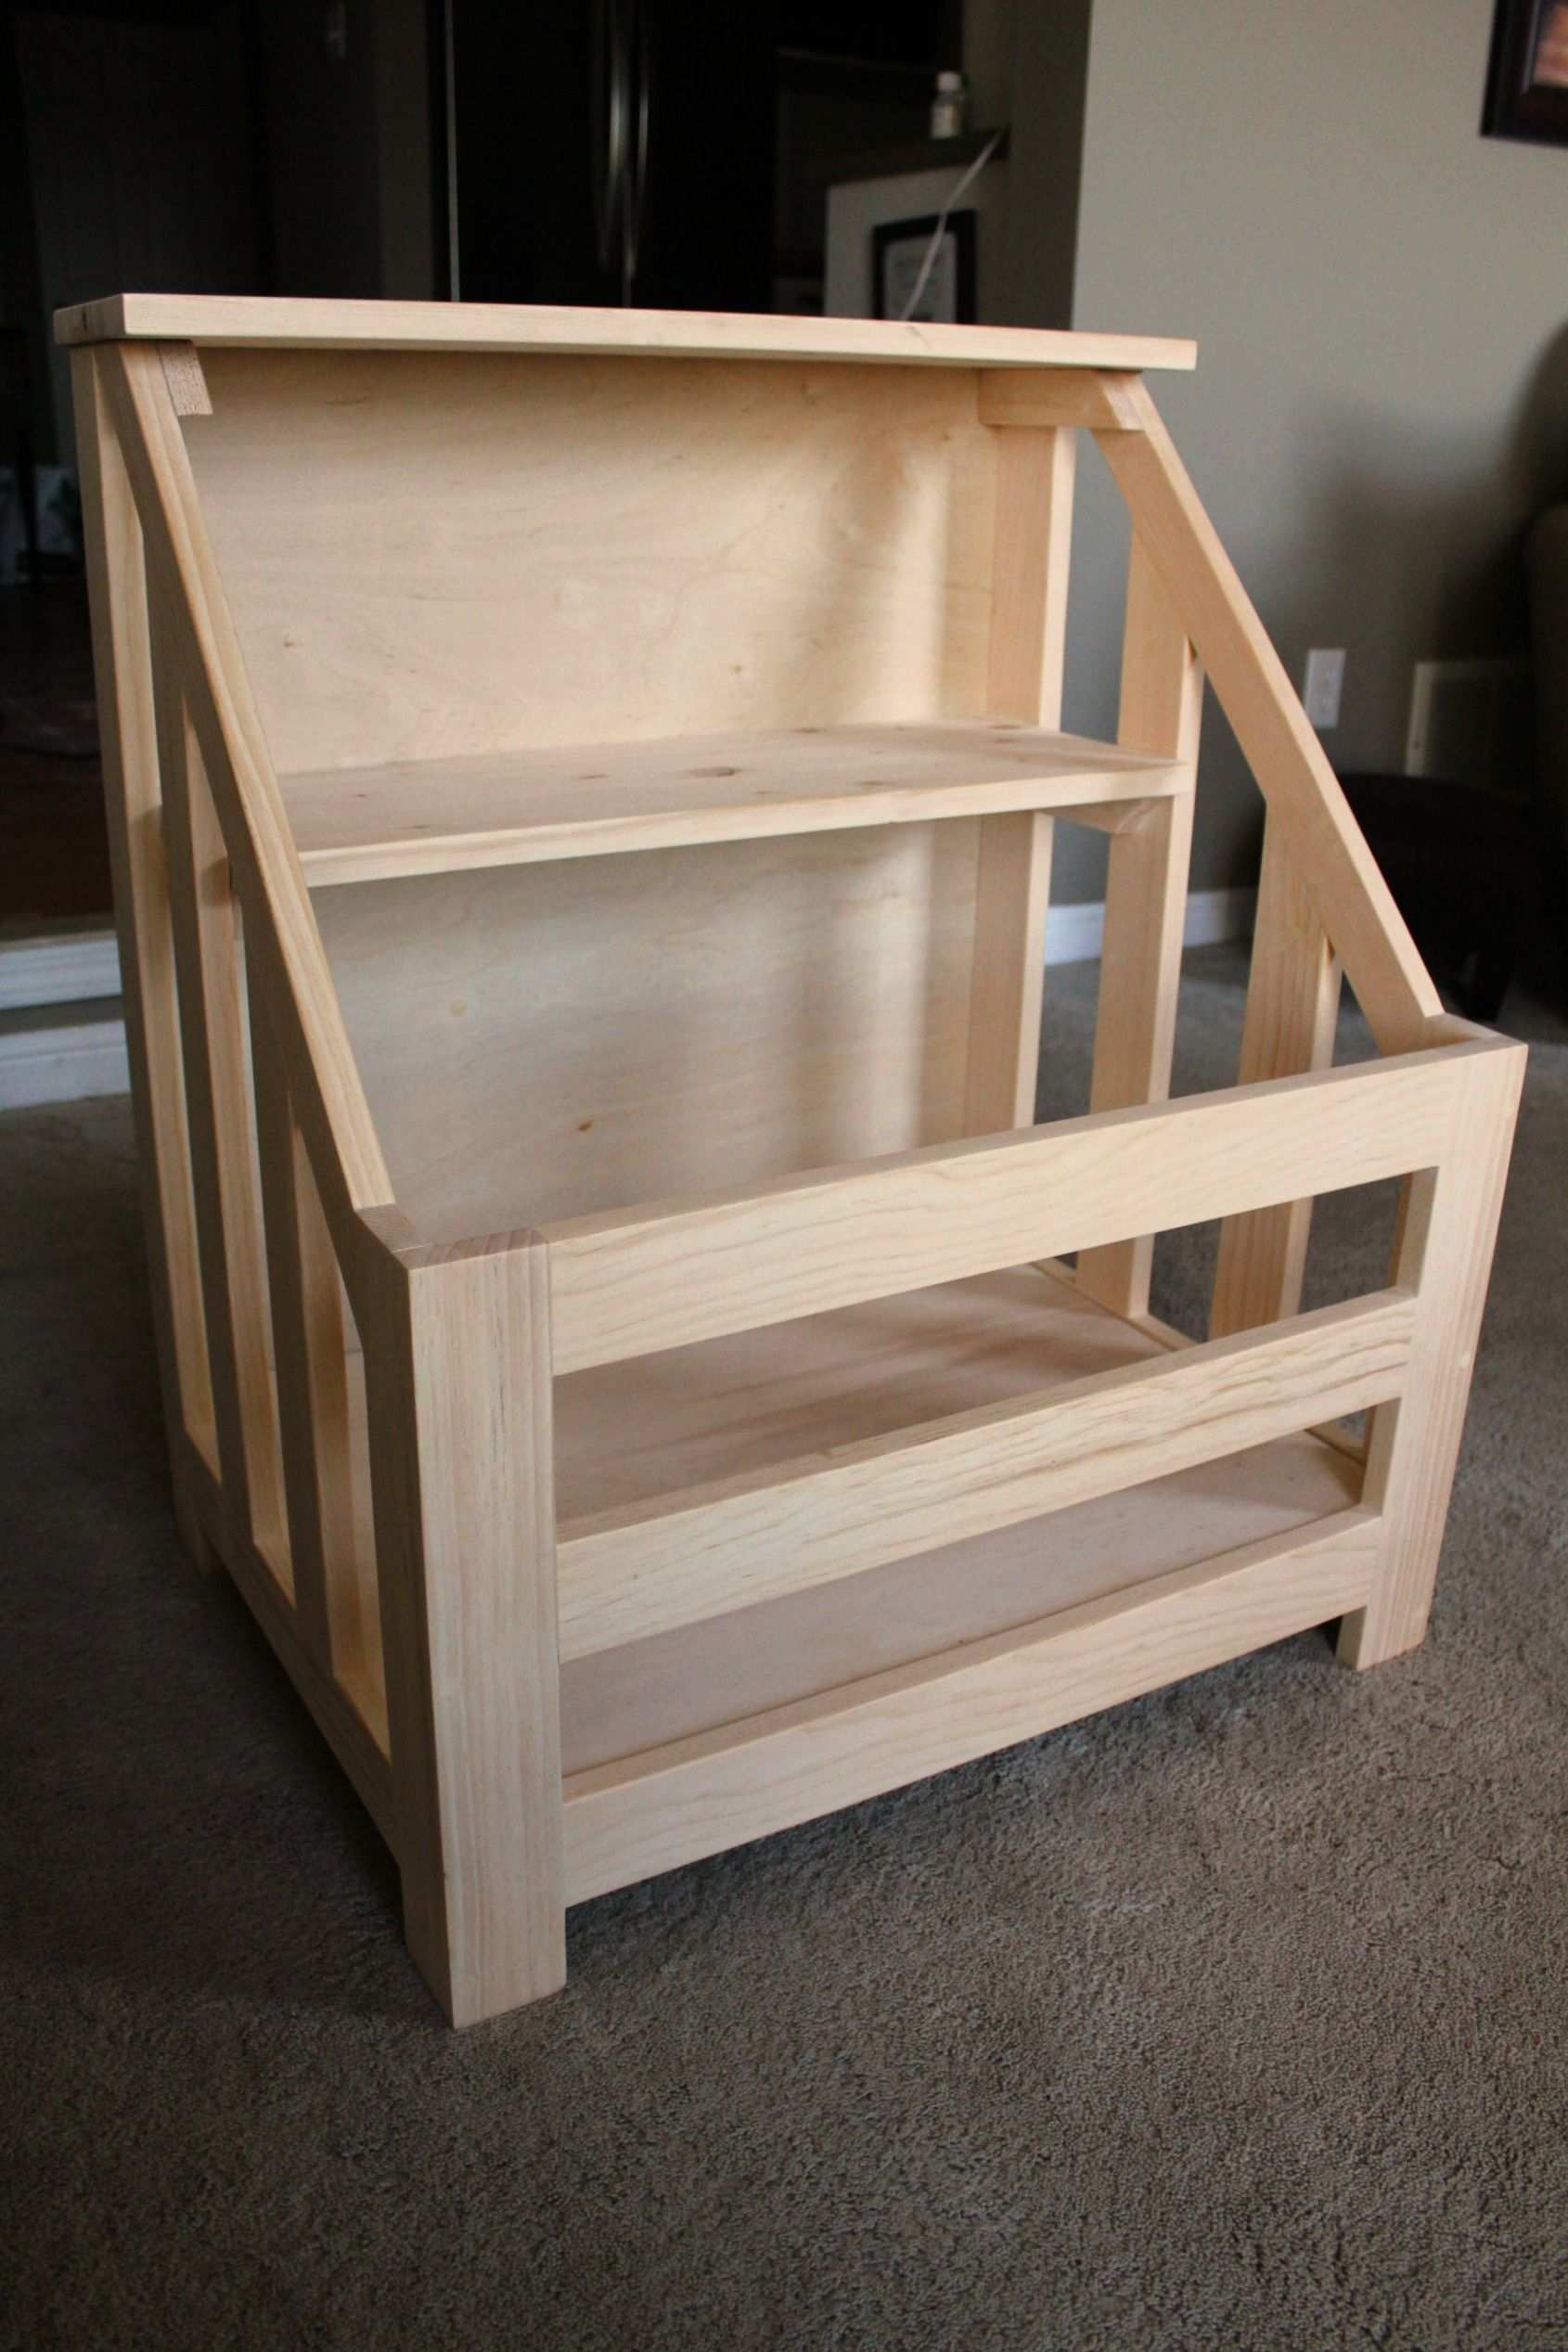 diy toy box bookshelf - i plan to recreate this using pallet